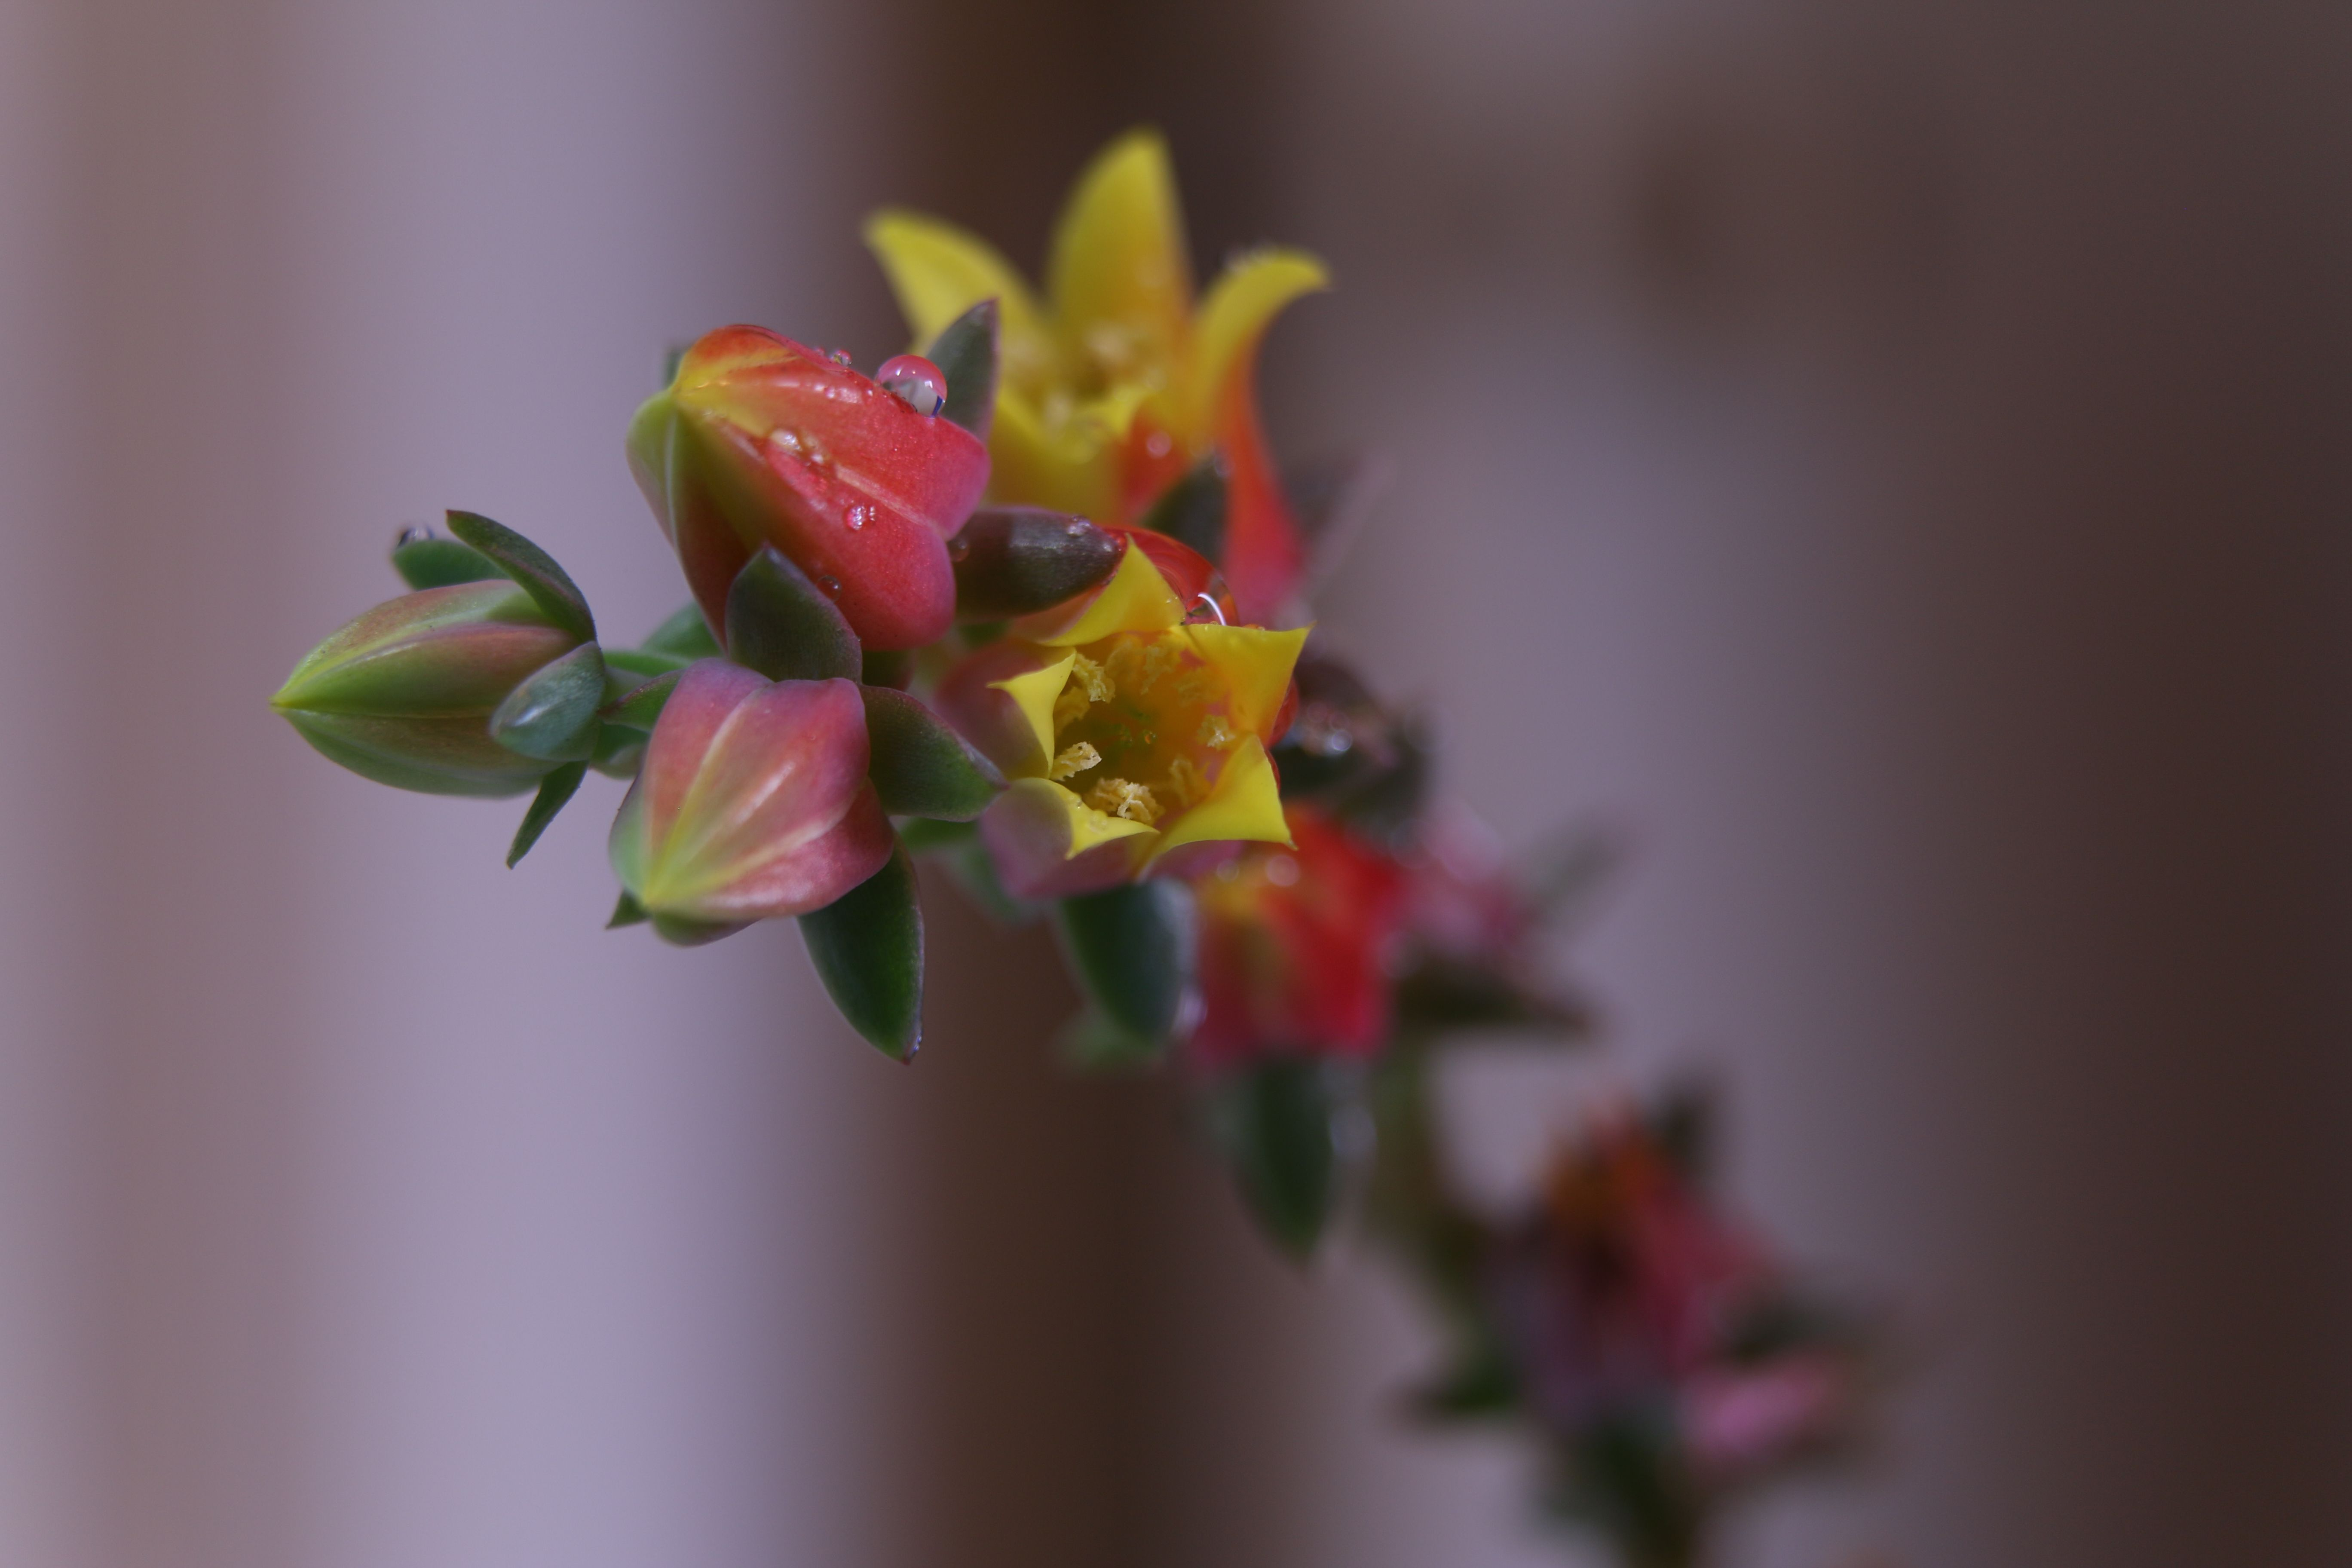 Here is the only photo for today a beautiful flowering succulent plant in the California rain. Here is a print of this flower: http://www.zazzle.com/yellow_orange_succulent_flower_canvas_print-192846402717972621